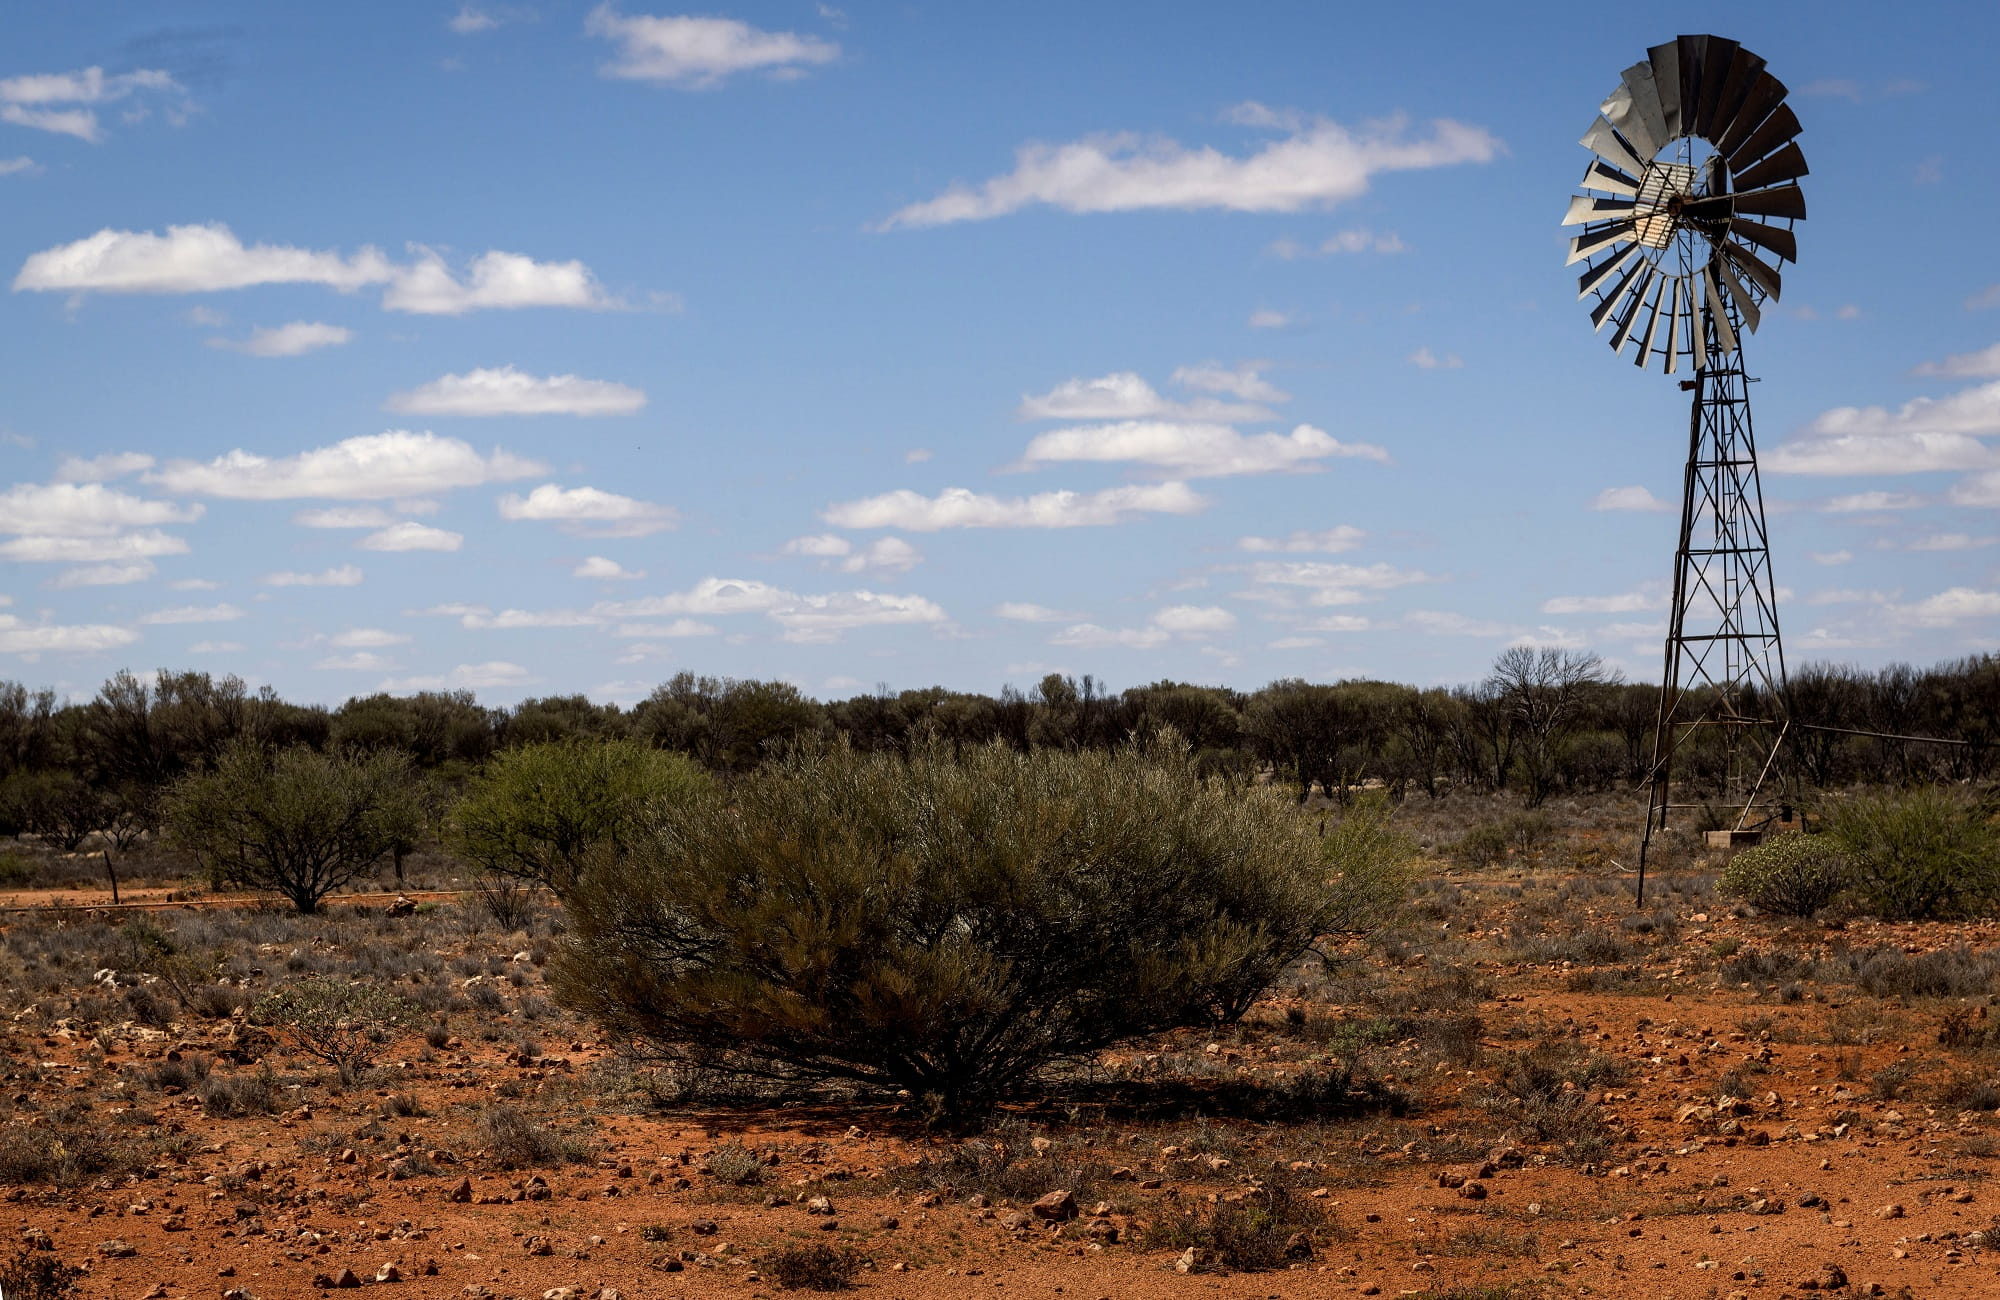 Windmill in Sturt National Park. Photo: John Spencer/OEH